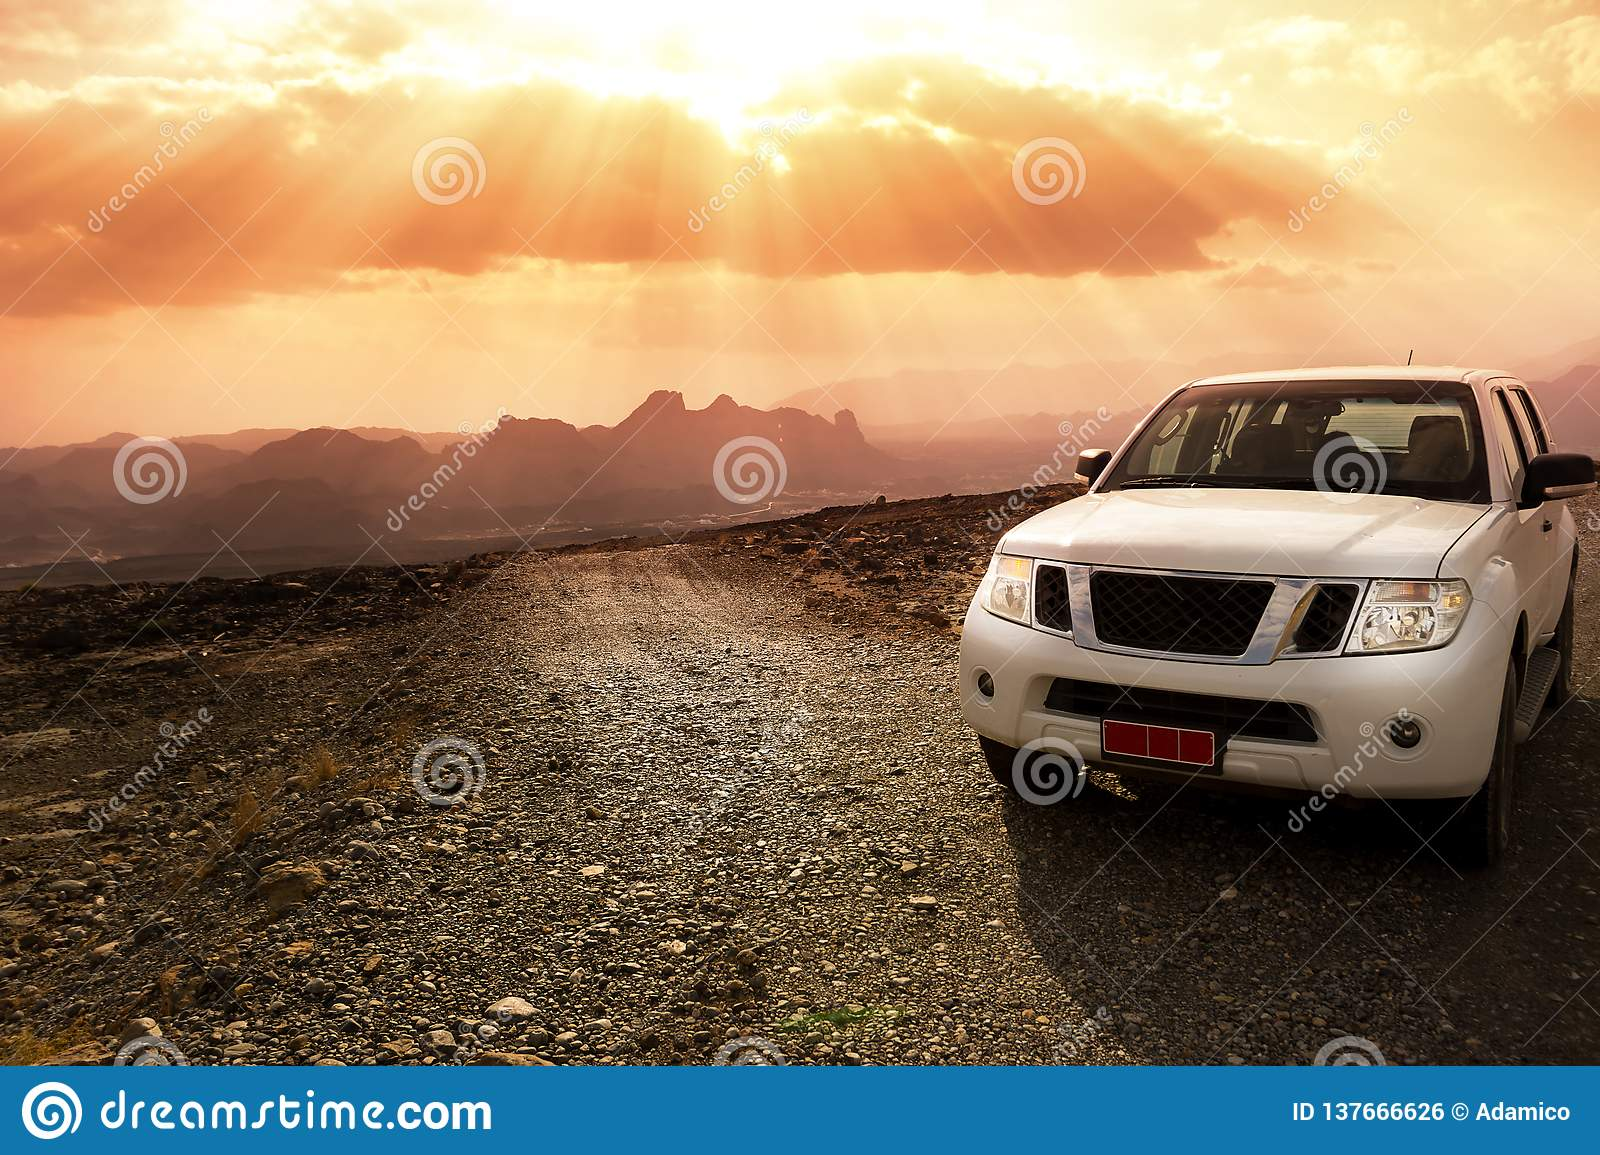 Off-road vehicle on the Jebel Shams mountains and cloudy sky with amazing sunrays